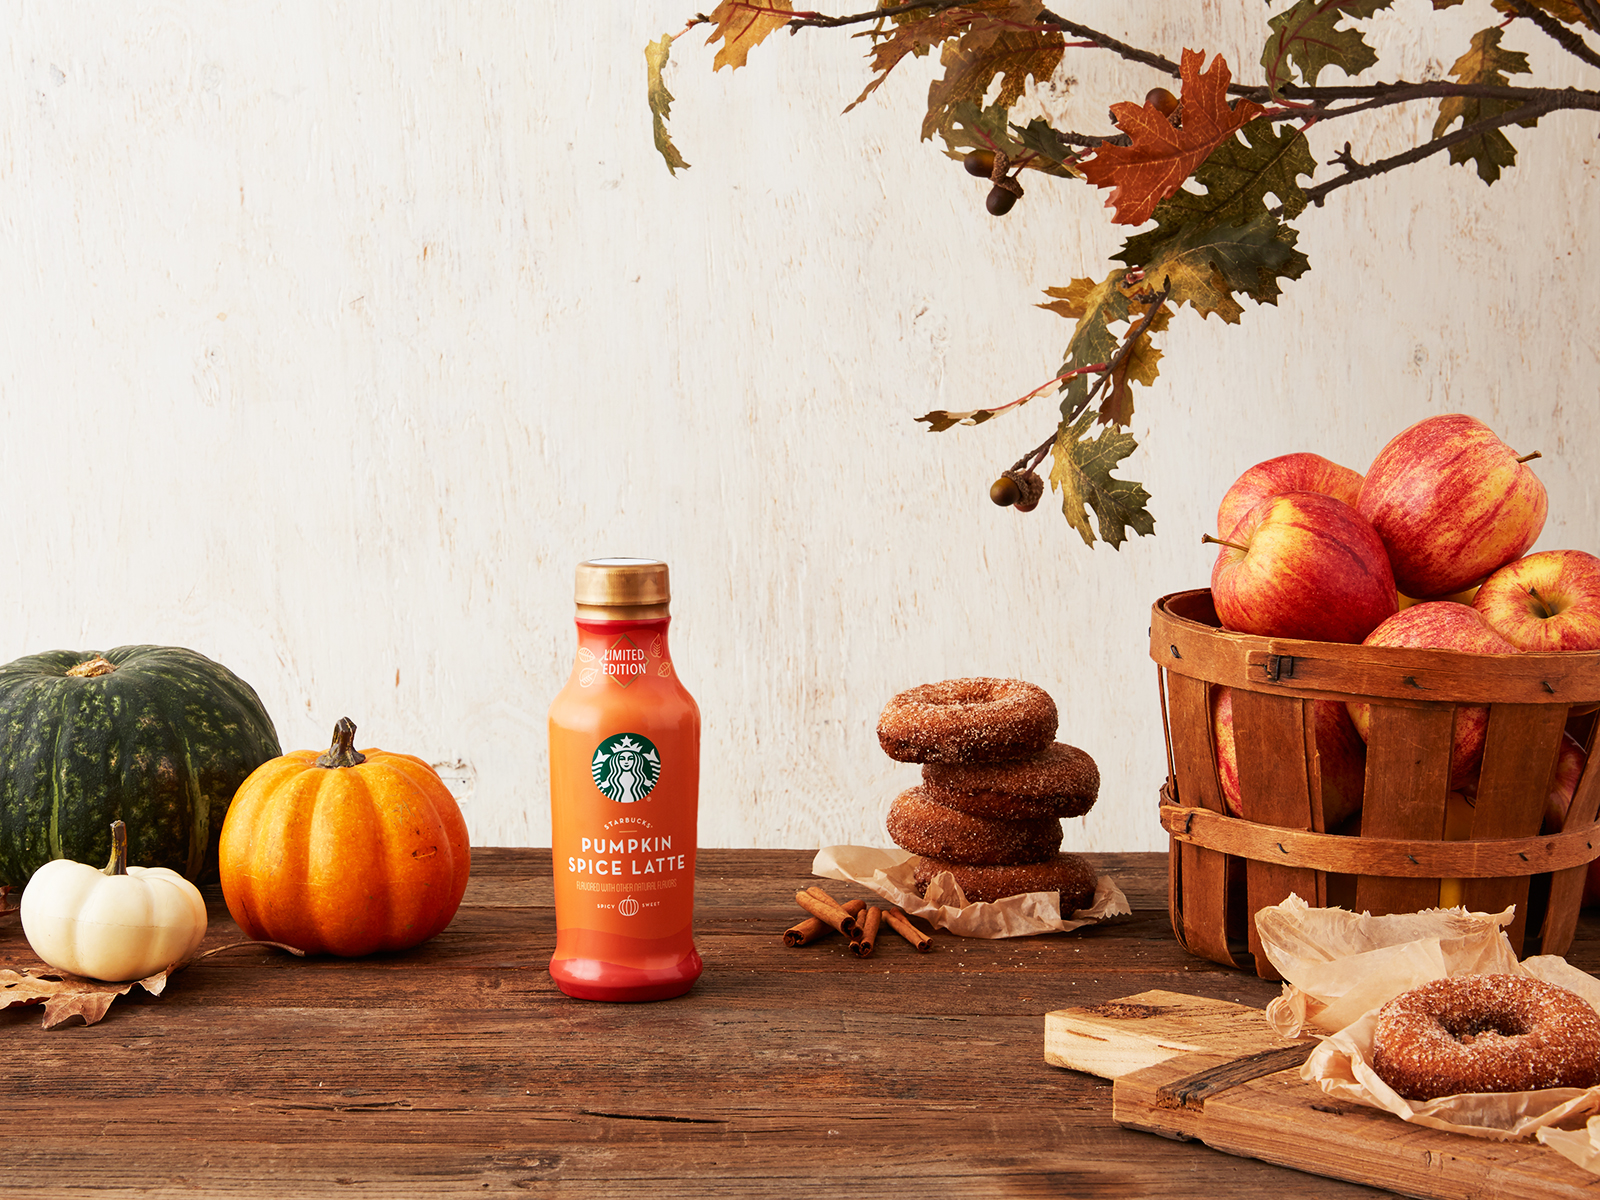 EC: There's Now a Pumpkin Spice Latte Tracker